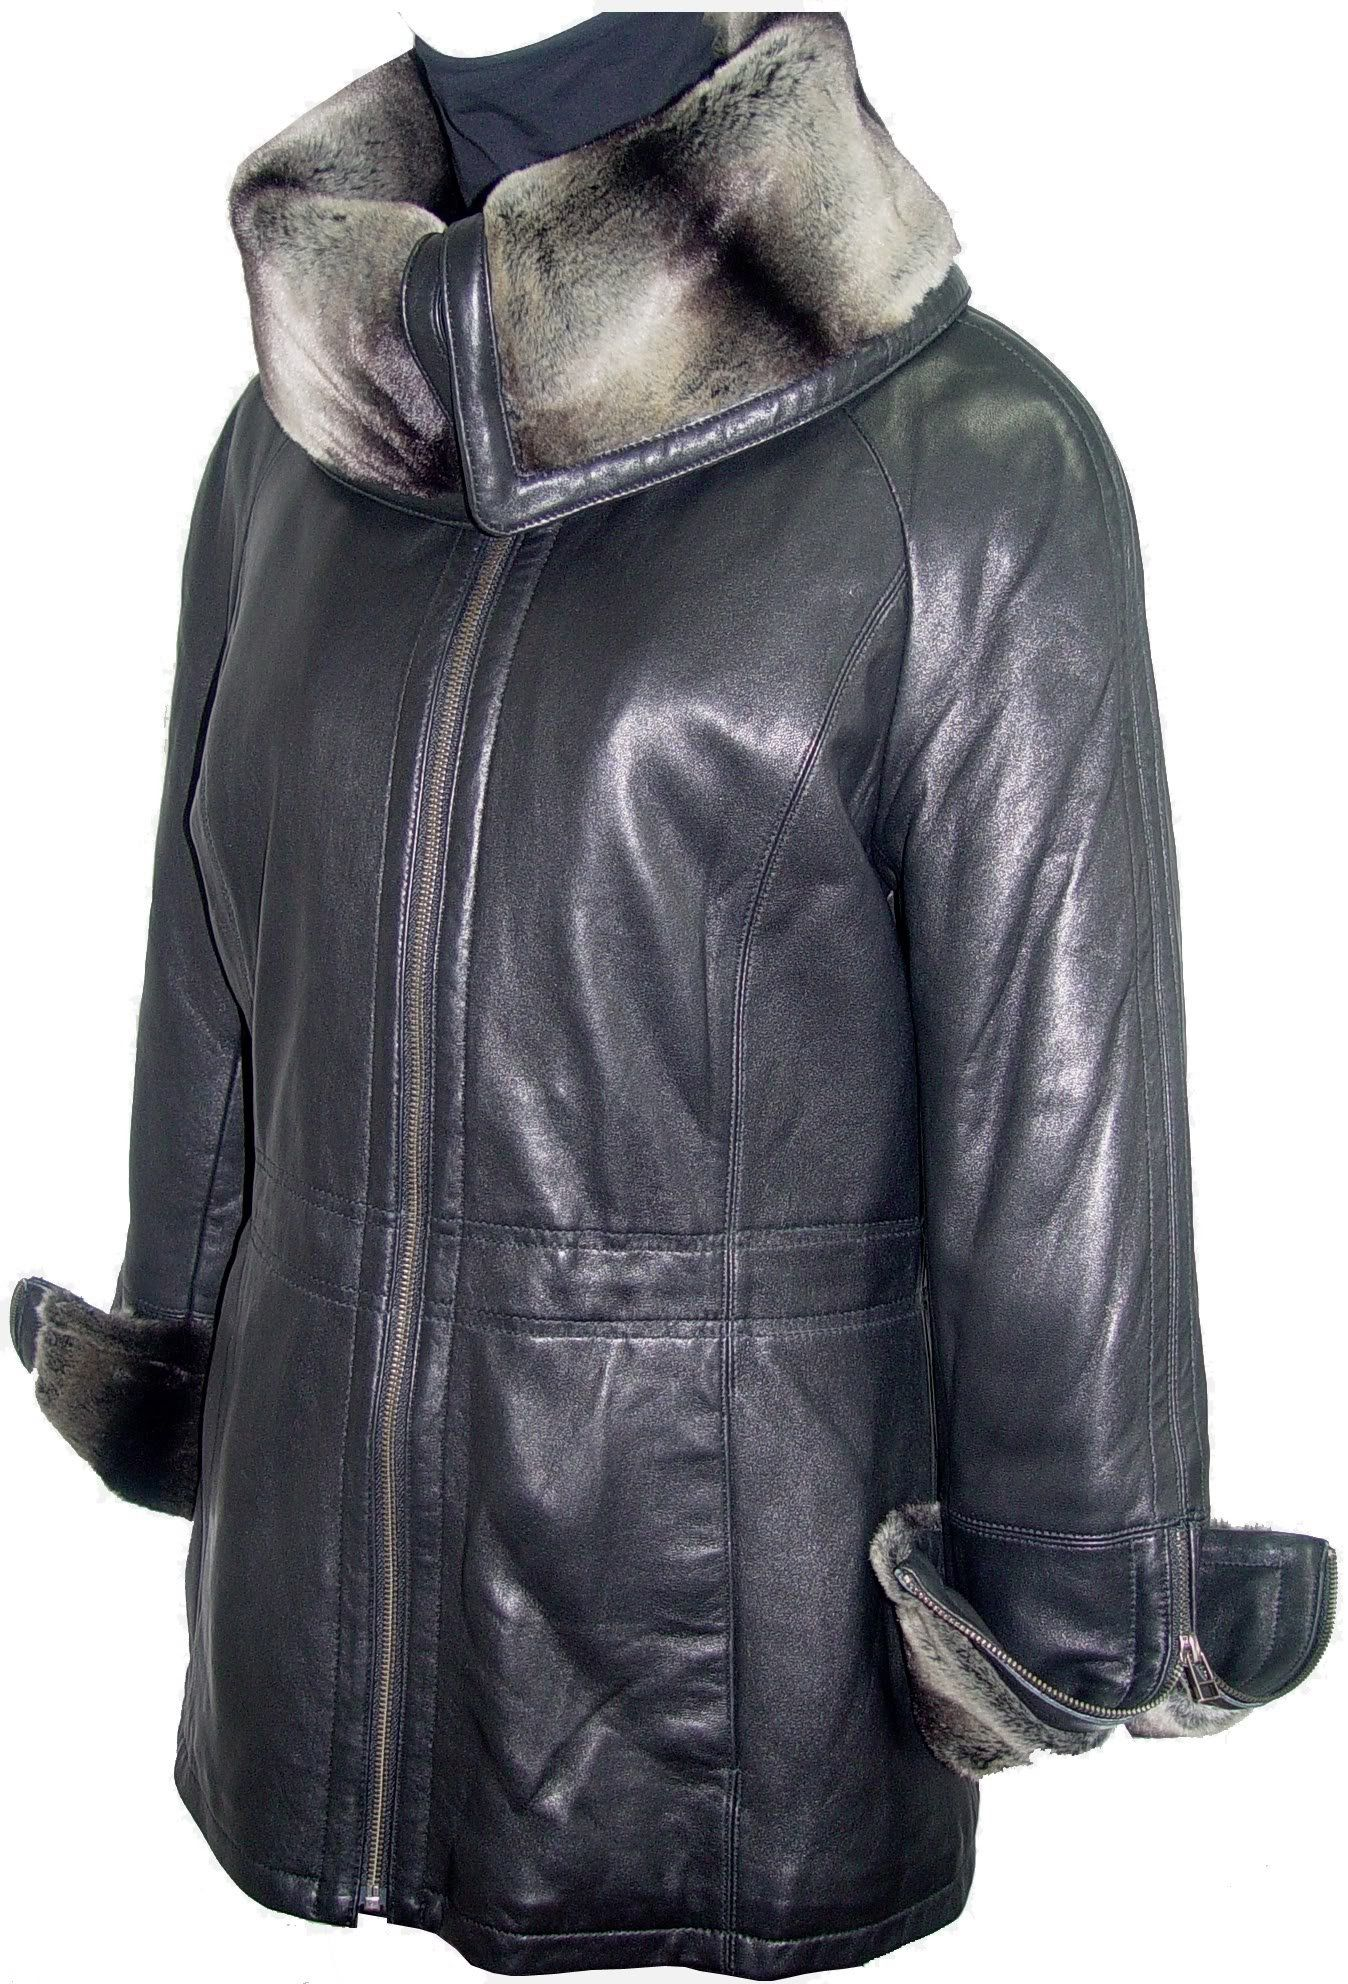 Johnny tailoring Women 5008 Real FUR LINED PETITE Leather